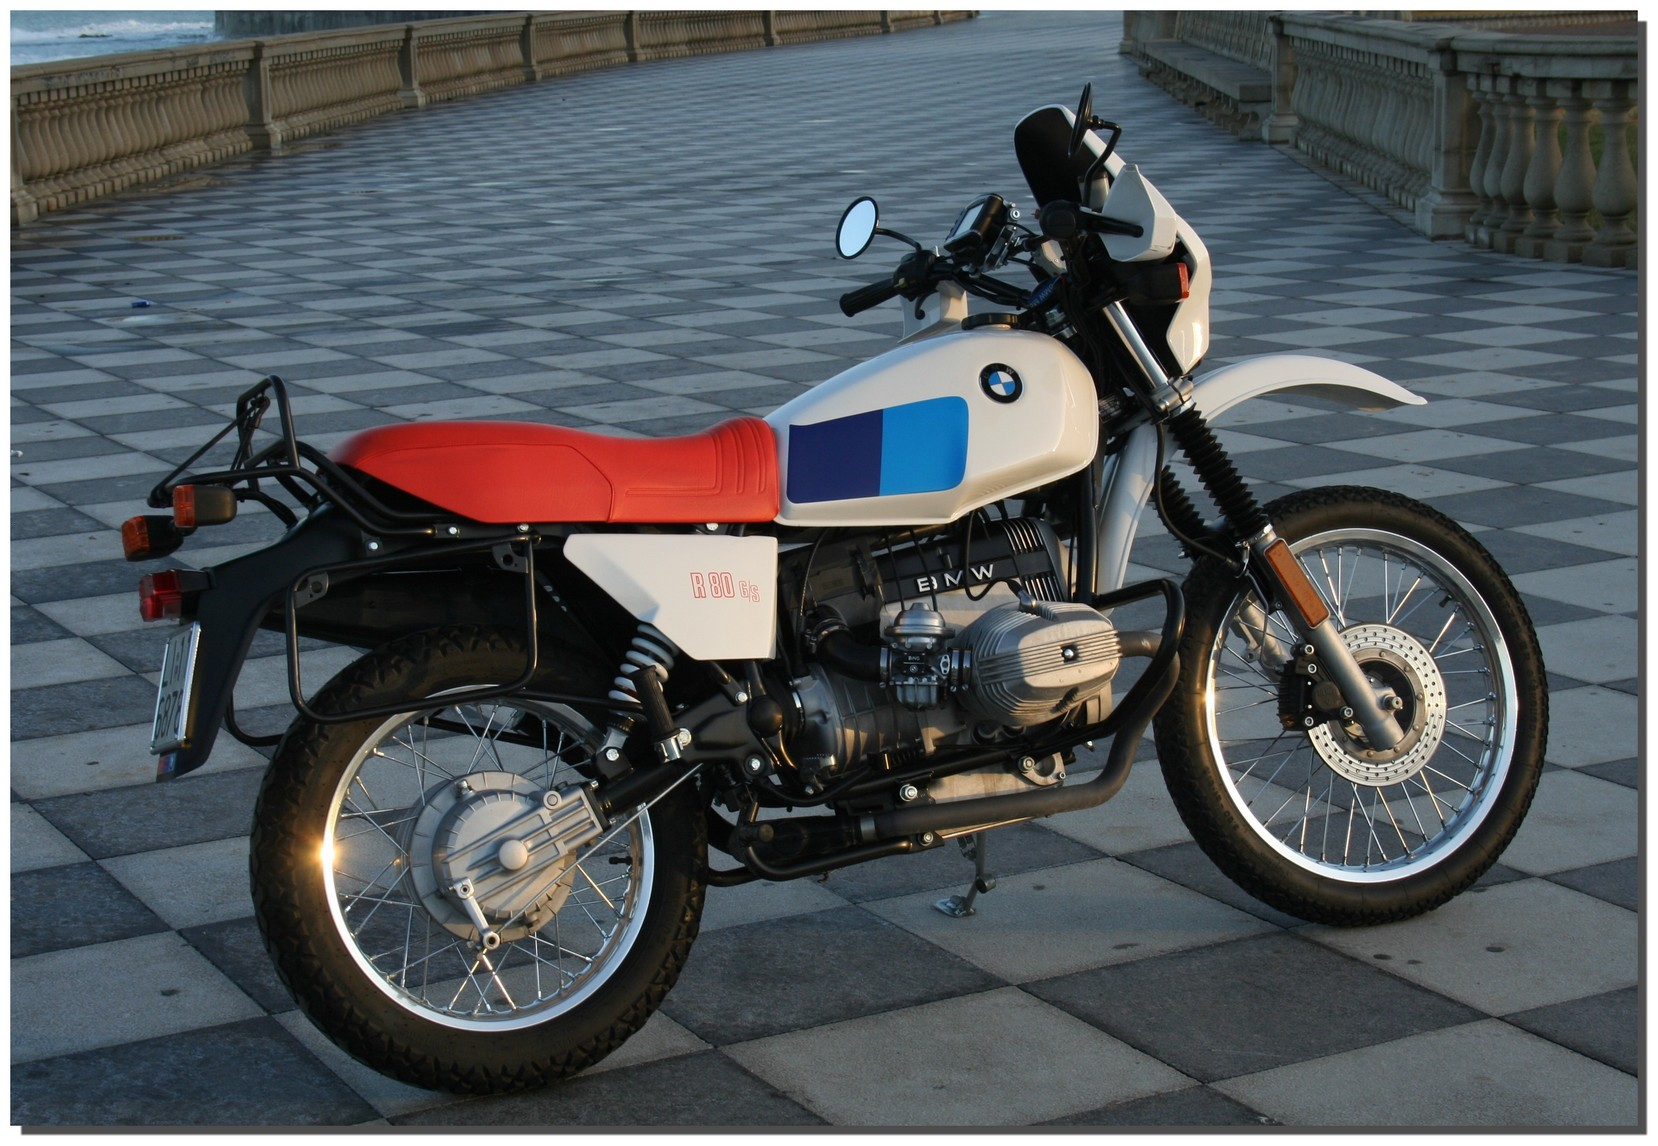 BMW R80GS 1989 images #6012